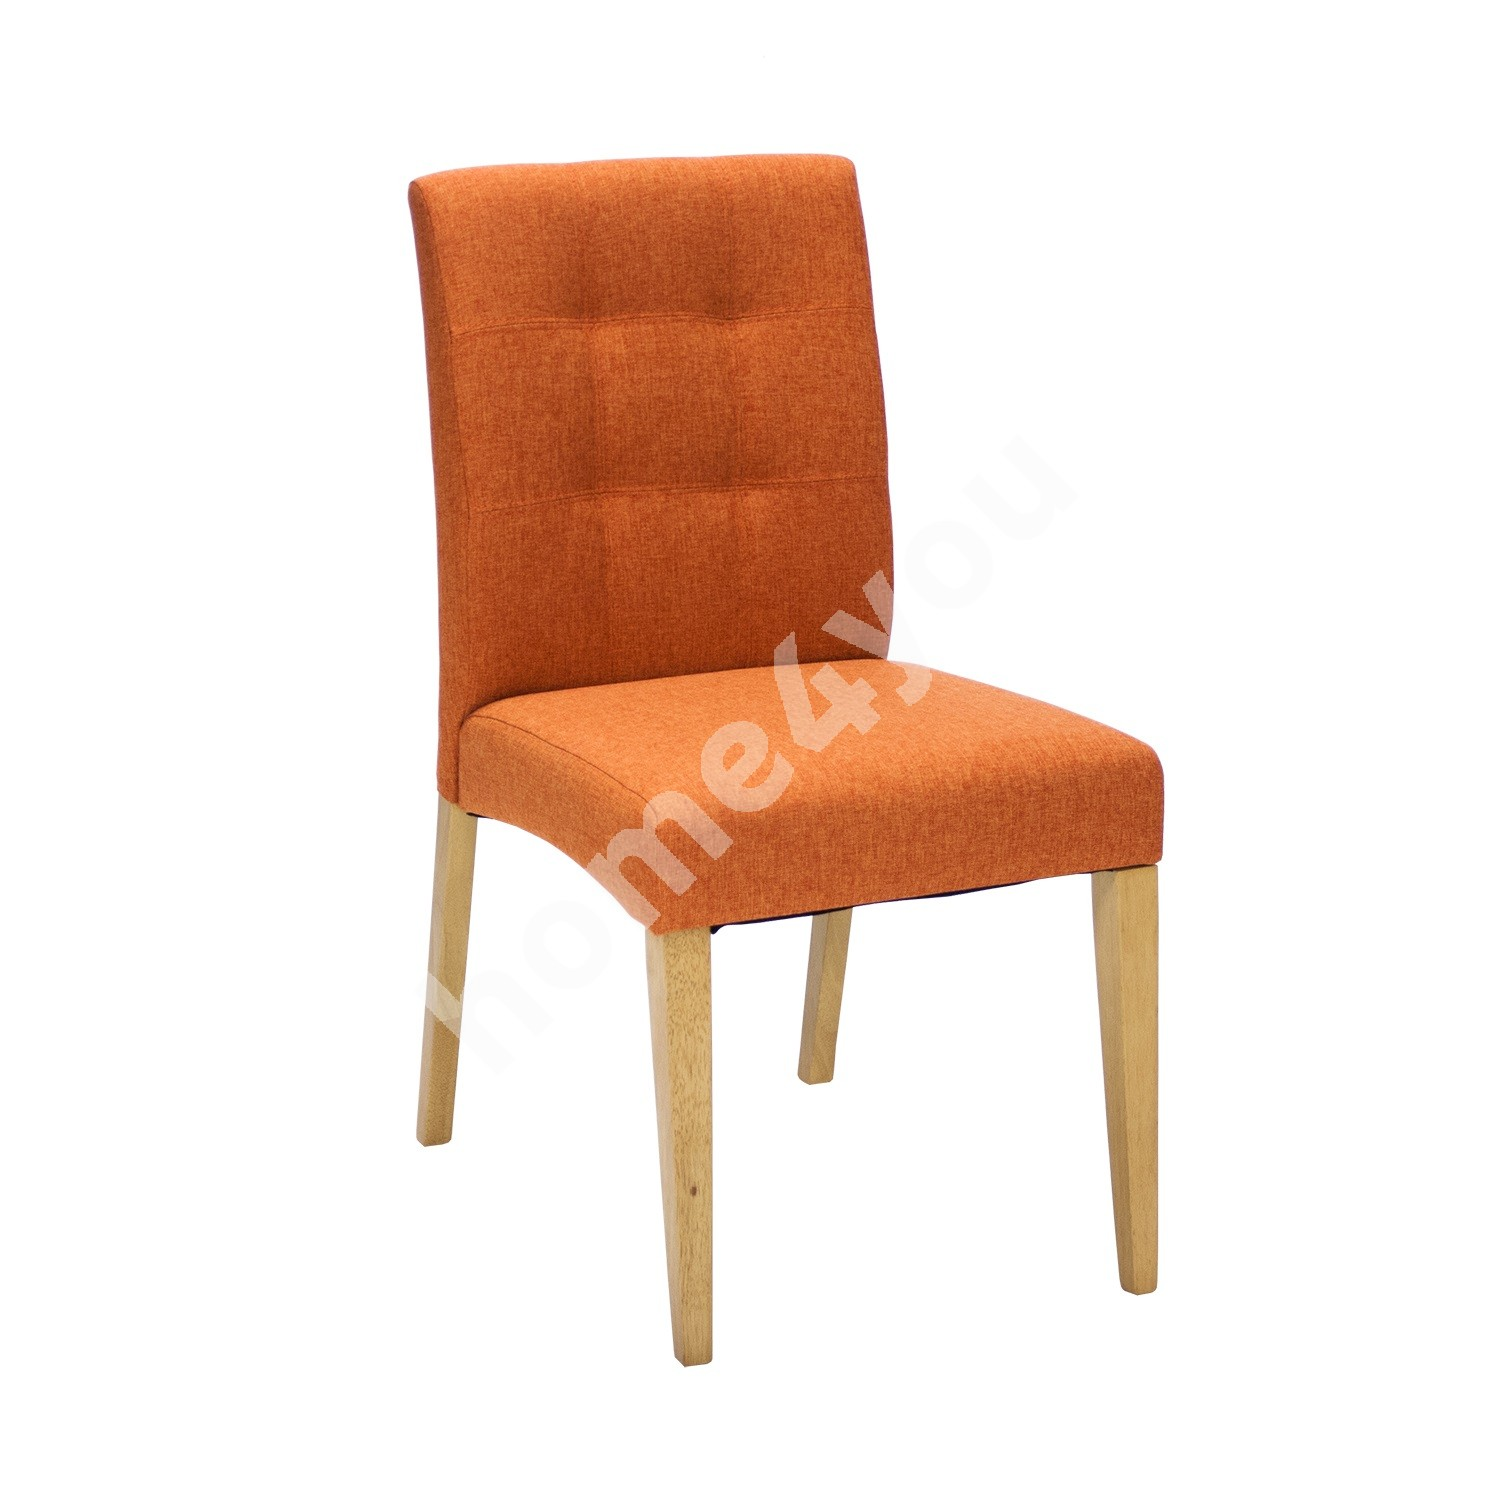 Chair ENRICH 46x57xH87cm, seat and back rest: fabric, color: orange, wood: rubber wood, color: oak, finishing: lacquered